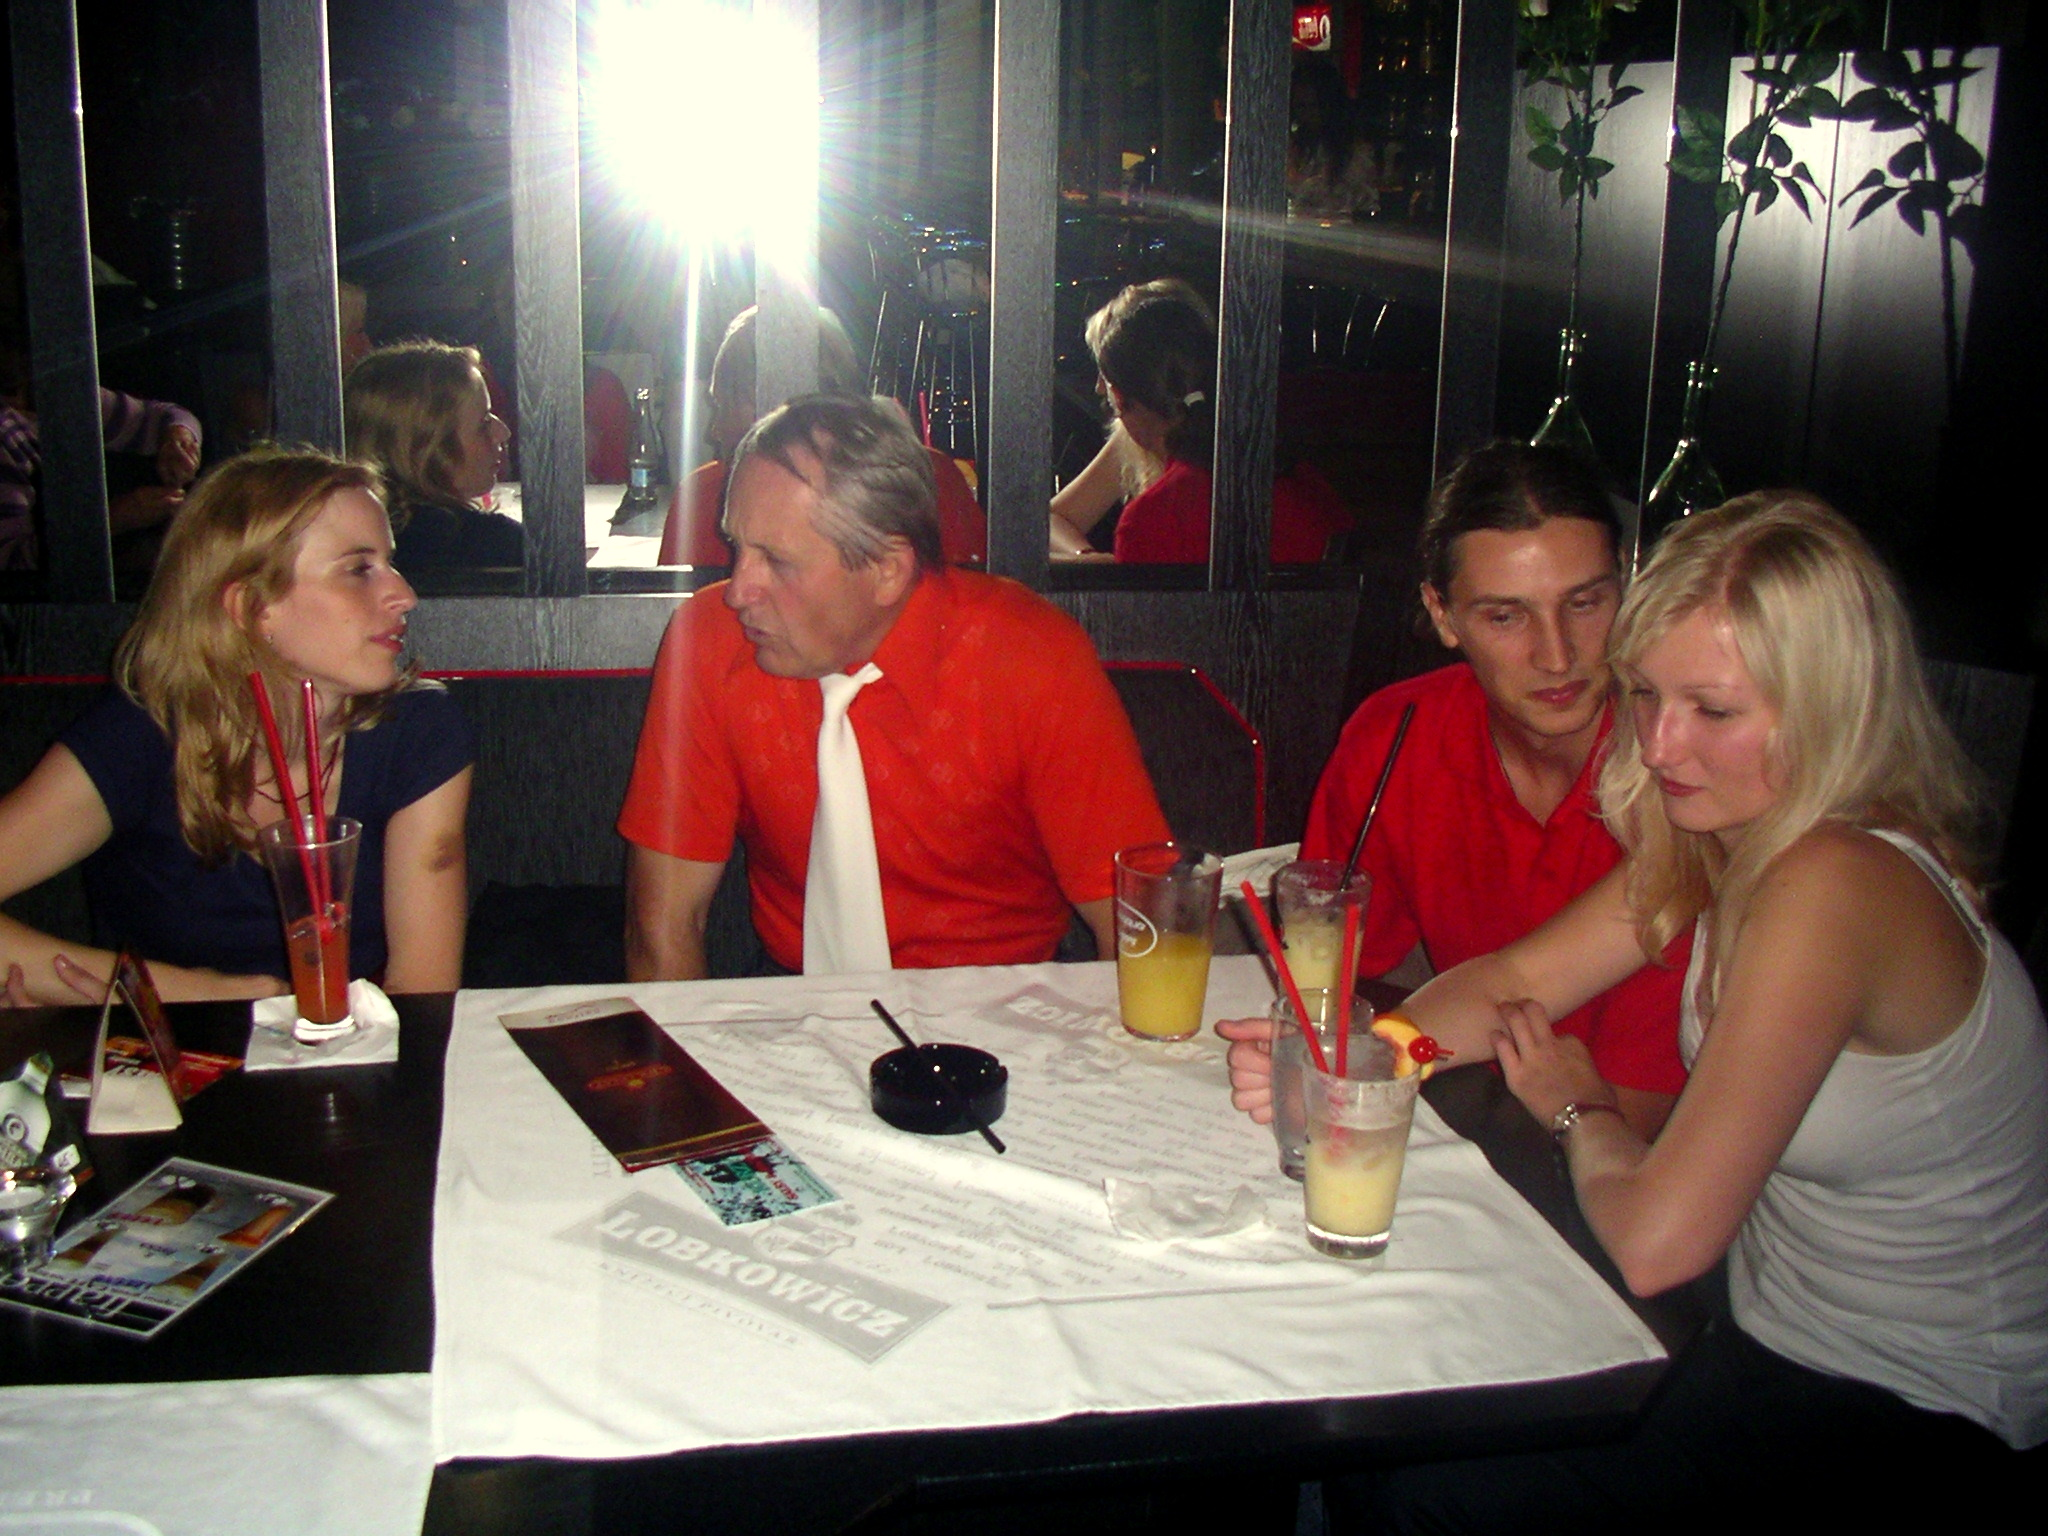 party_v_barvach_4_20111111_1706644260